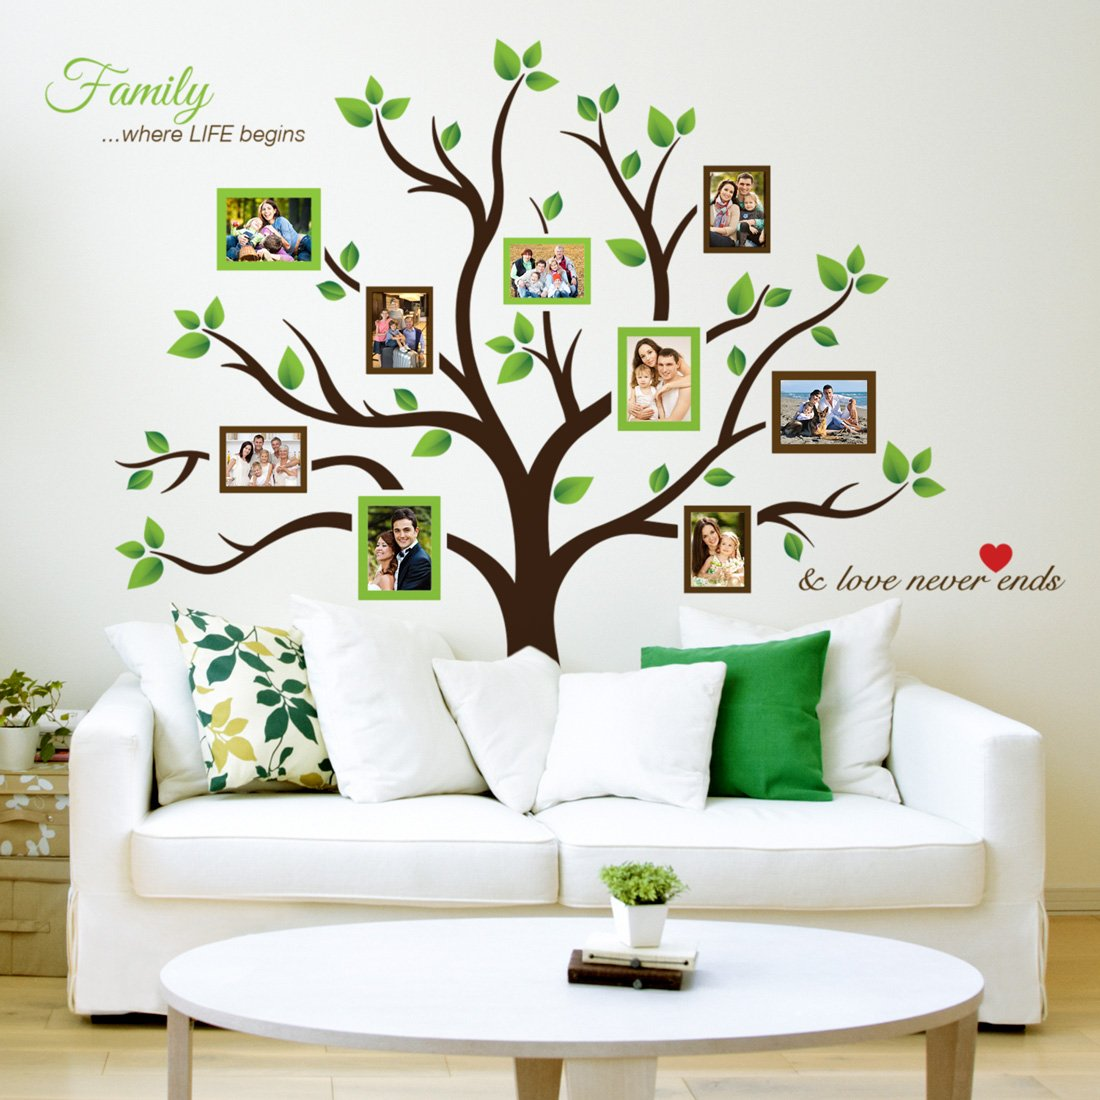 Amazon timber artbox large family tree photo frames wall amazon timber artbox large family tree photo frames wall decal the sweetest highlight of your home and family home kitchen jeuxipadfo Choice Image